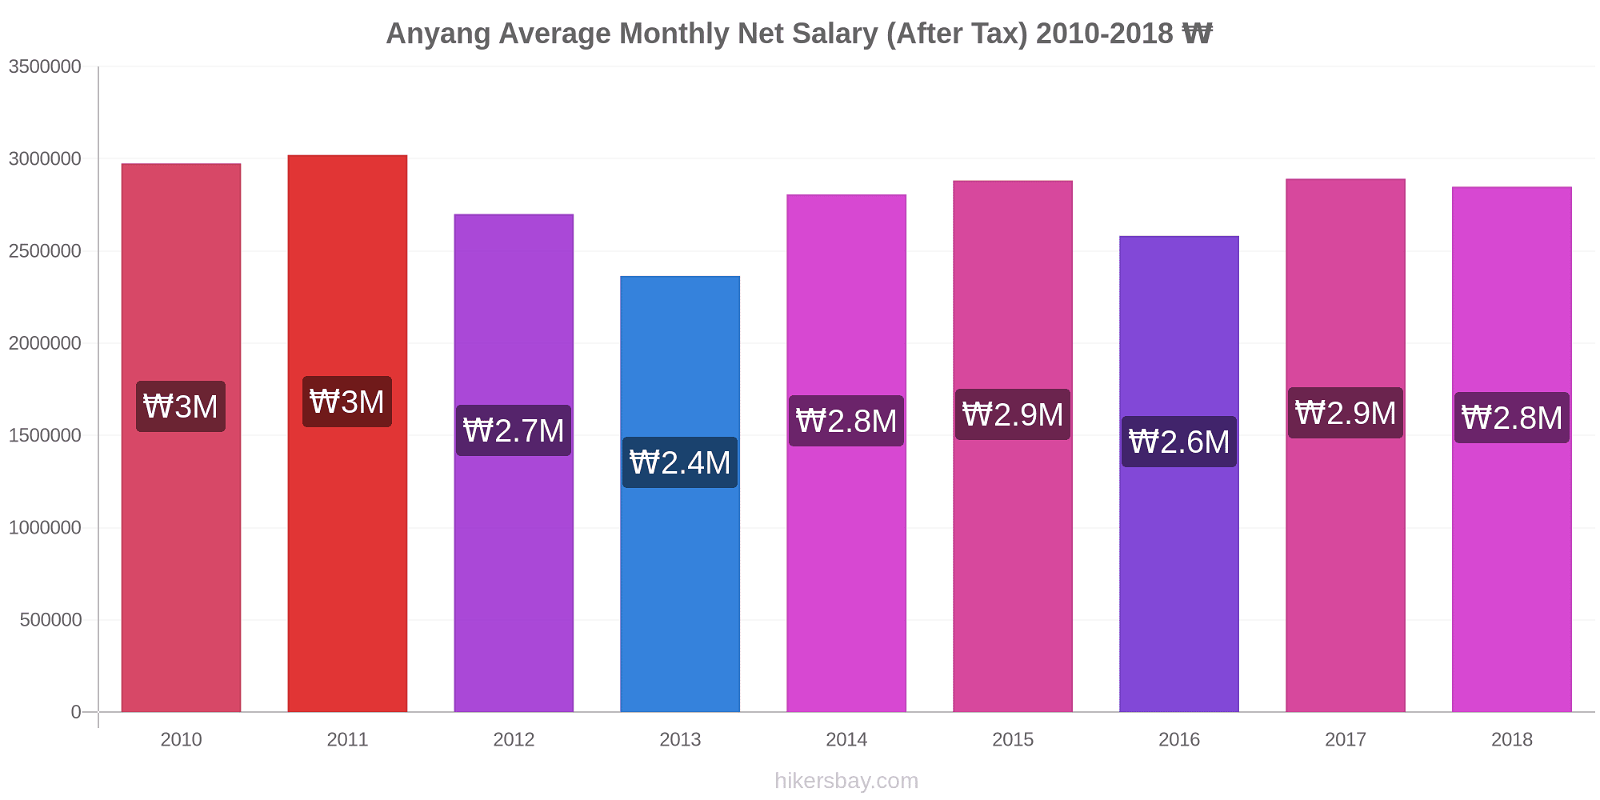 Anyang price changes Average Monthly Net Salary (After Tax) hikersbay.com